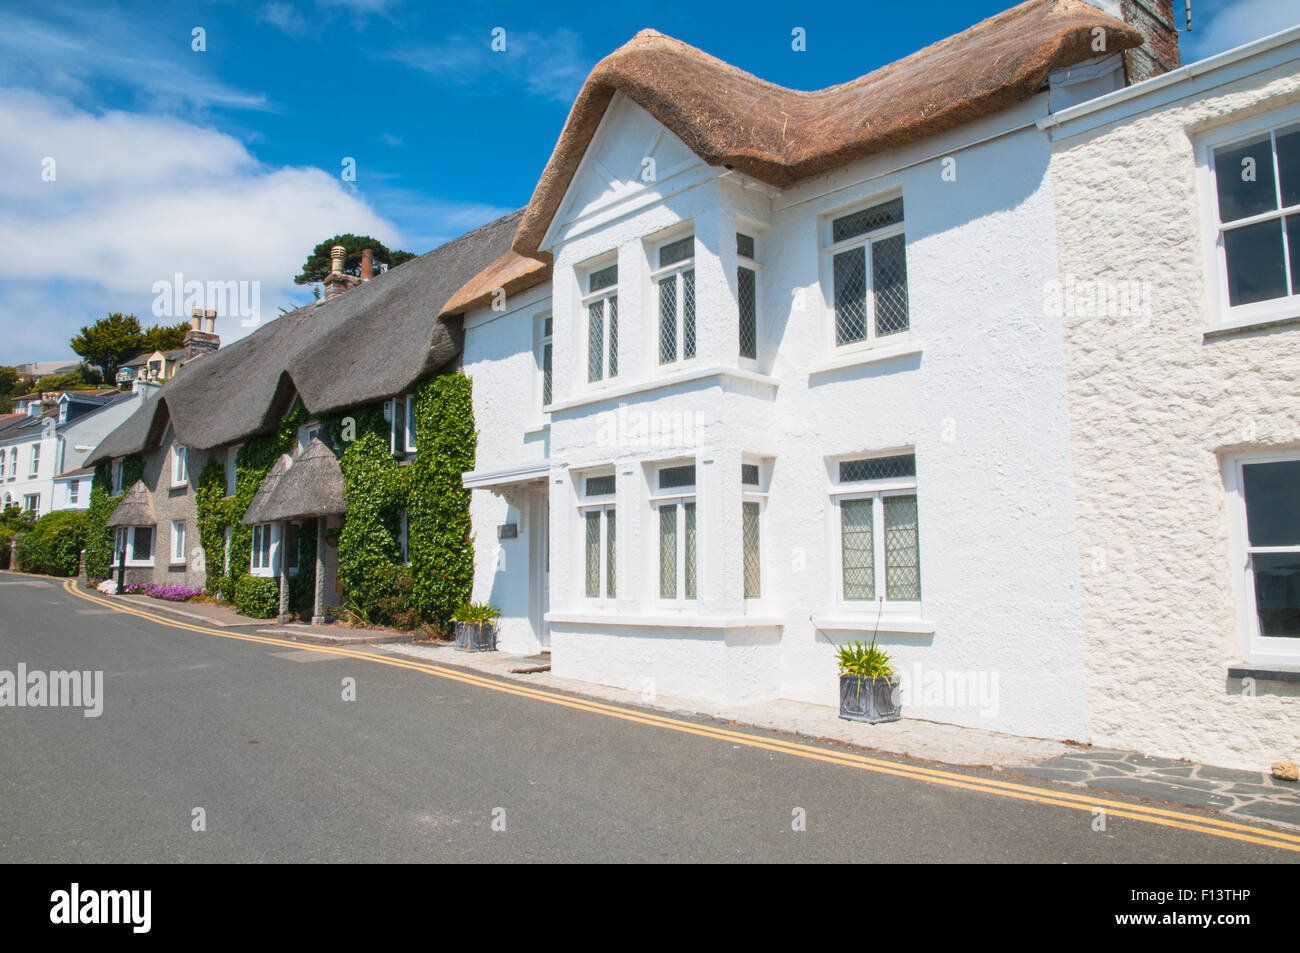 Thacthed Cottages St Mawes Cornwall England - Stock Image